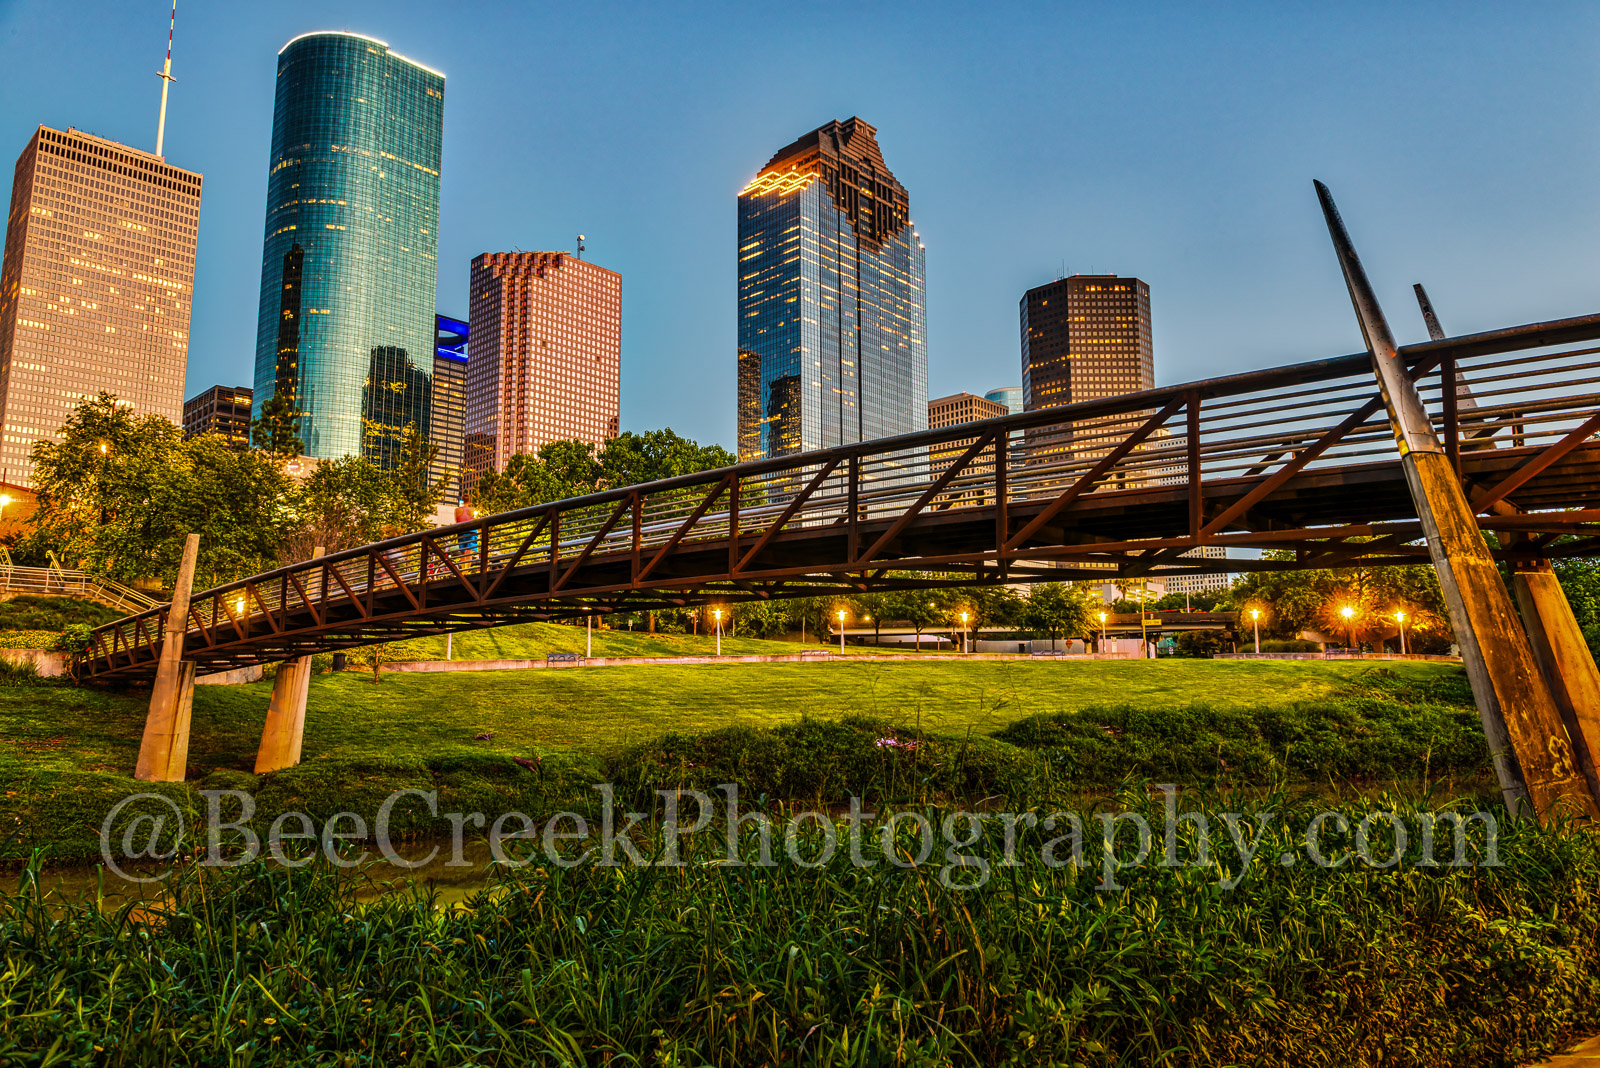 Houston, bagby,  sabine, promenade, bridge, downtown, skyline, blue hour, dusk, pedestrian bridges, america, cityscapes, stock bridge photos, houston stock, bridge, images of houston, city, US, street, photo